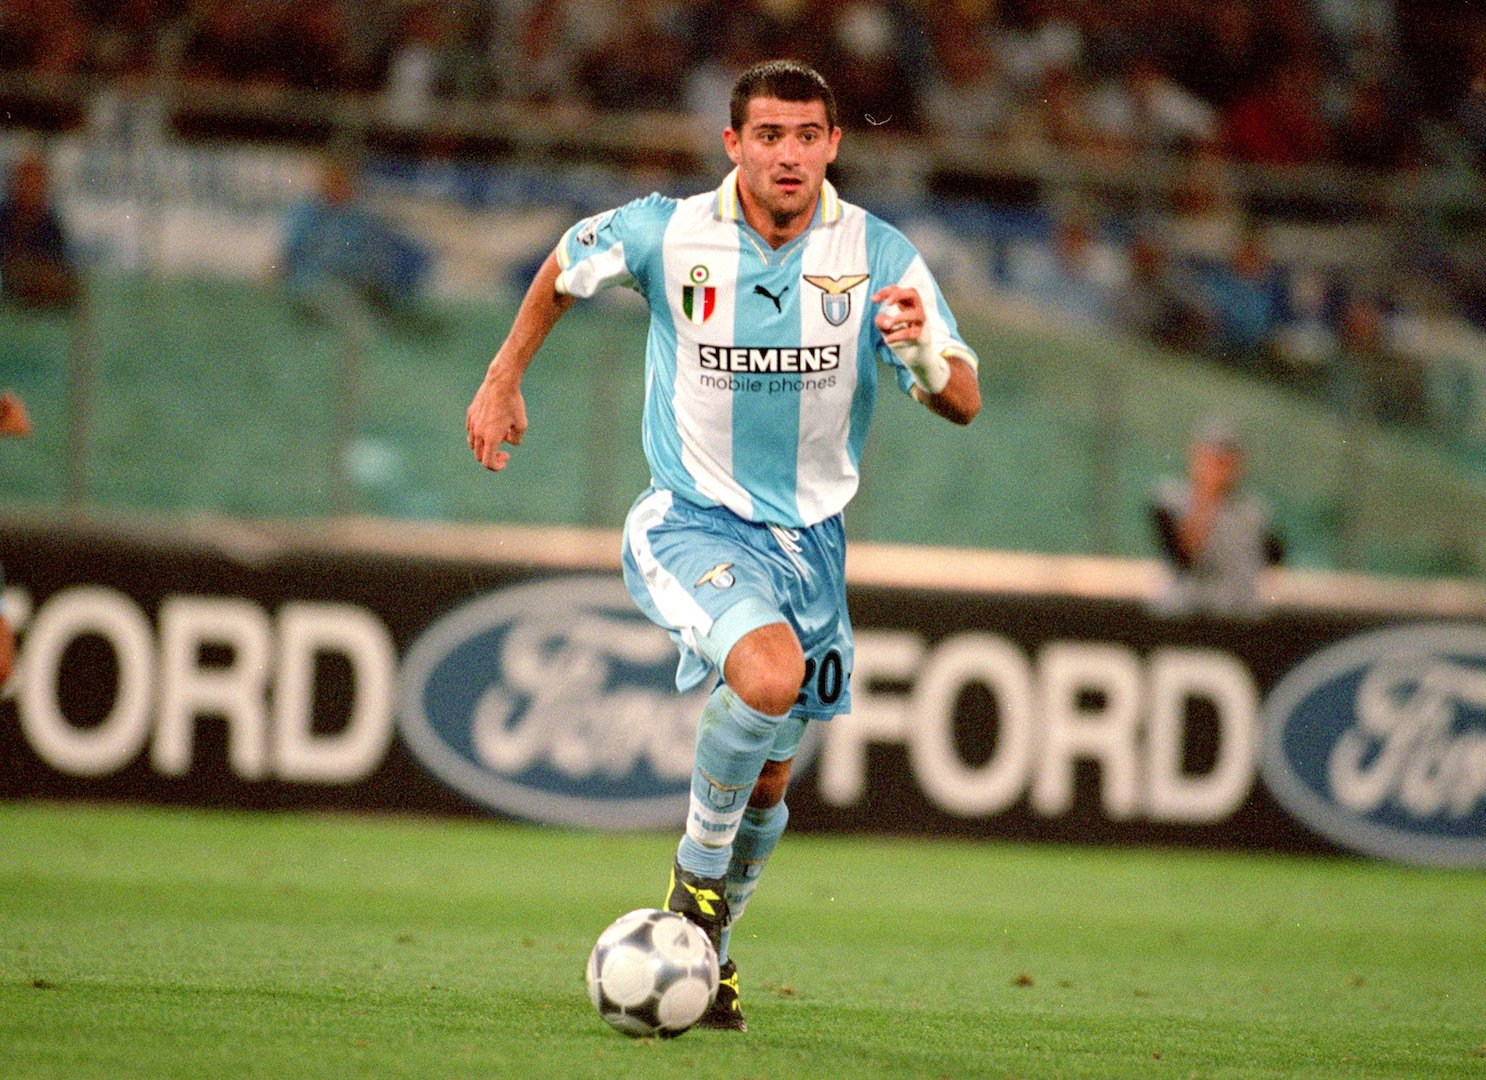 20 Sep 2000: Dejan Stankovic of Lazio in action during the UEFA Champions League match against Sparta Prague at the Stadio Olimpico in Rome, Italy. Lazio won the match 3-0. Mandatory Credit: Dave Rogers /Allsport